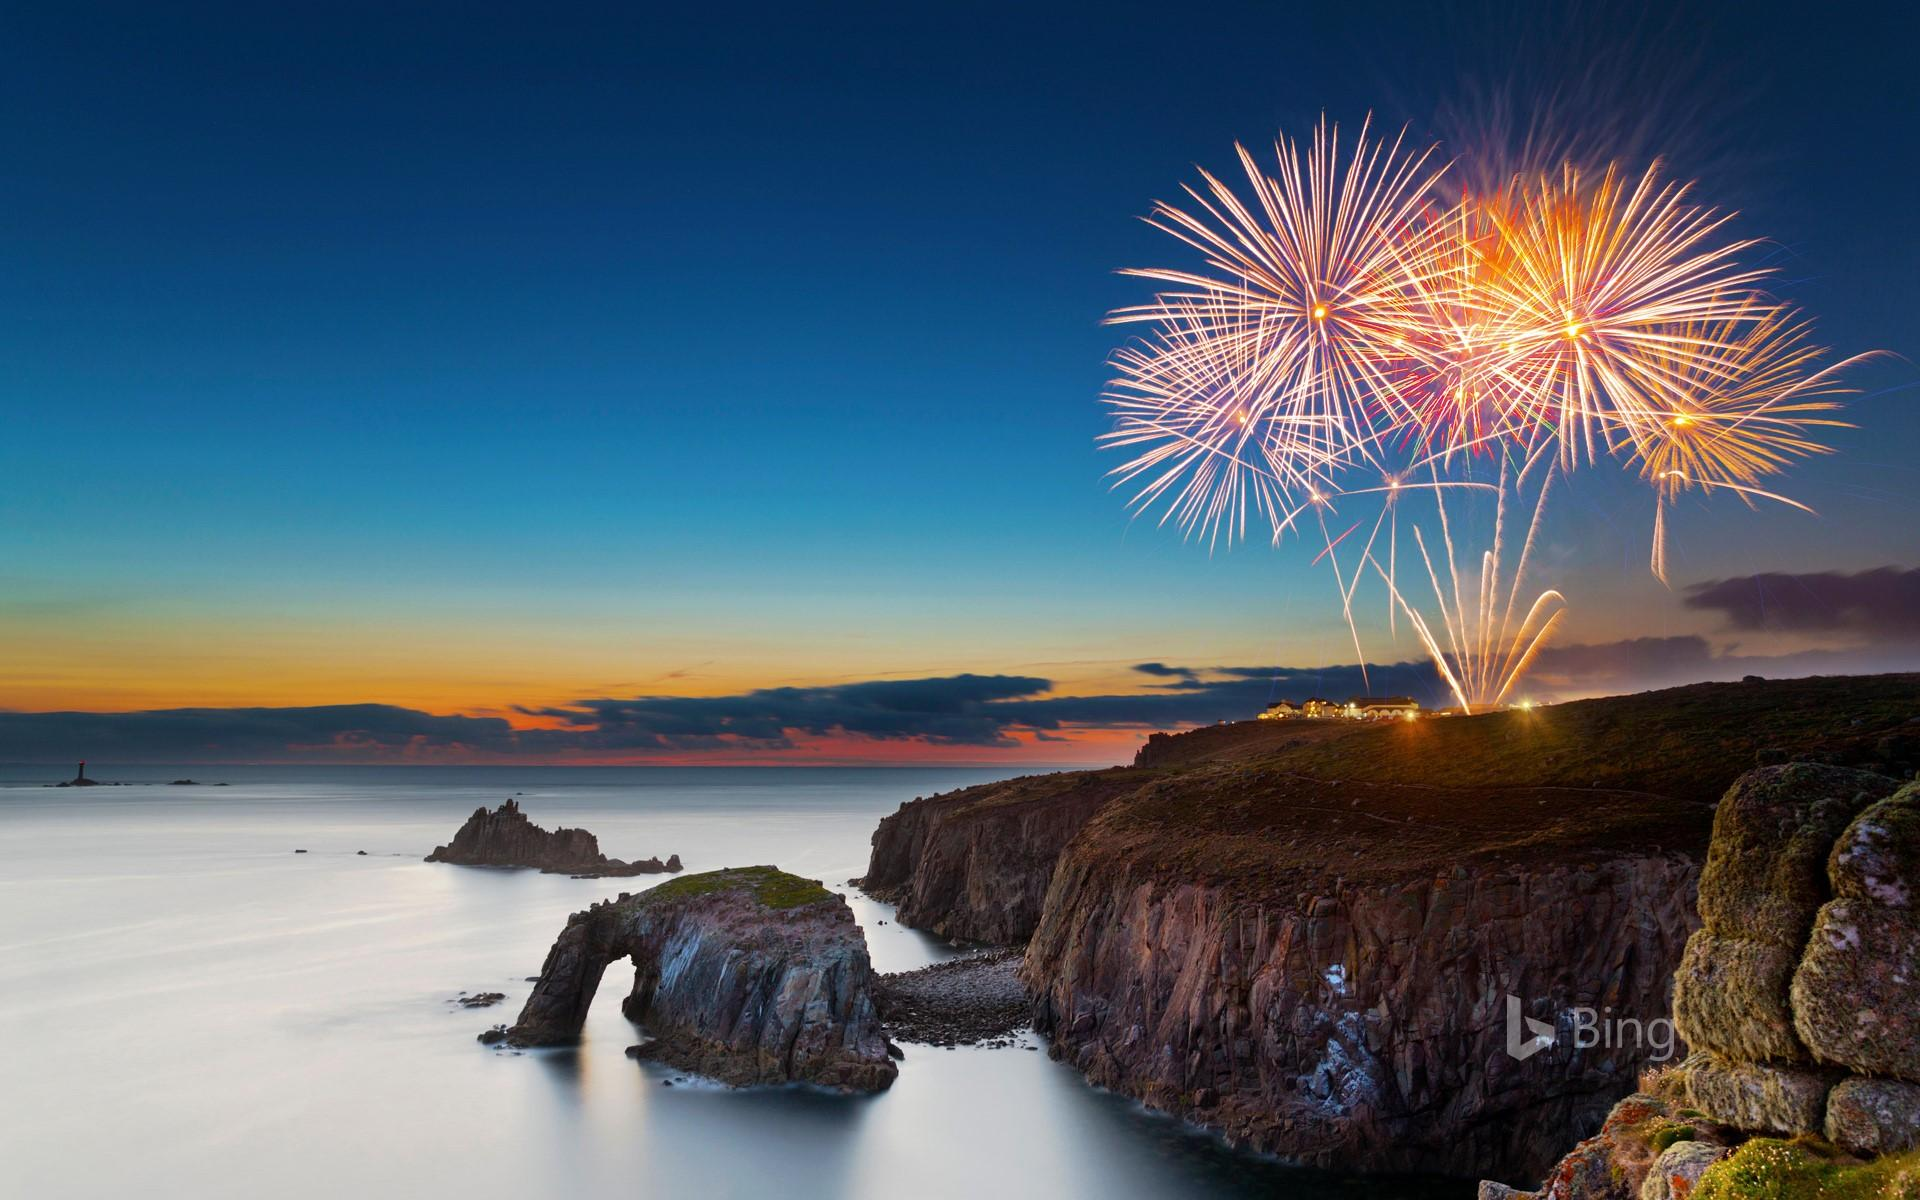 Fireworks at Land's End, Cornwall